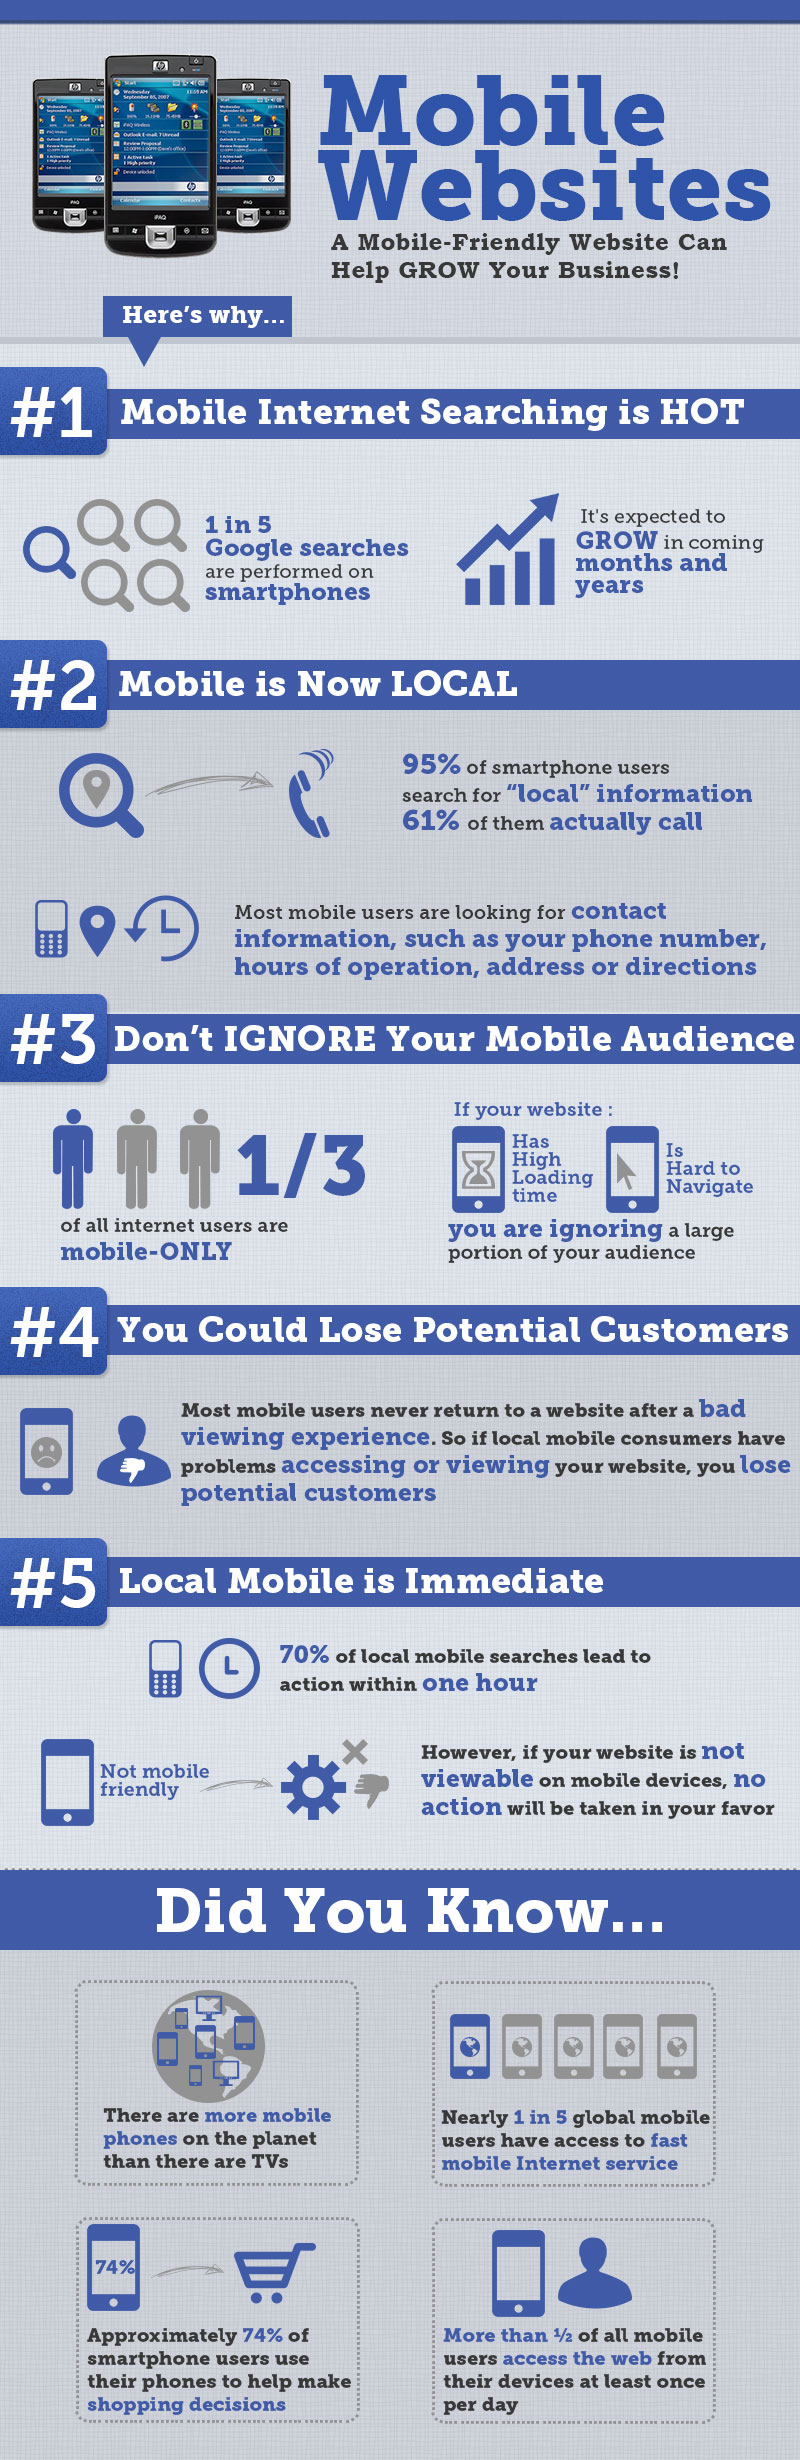 Mobile Marketing For Real Estate Agents